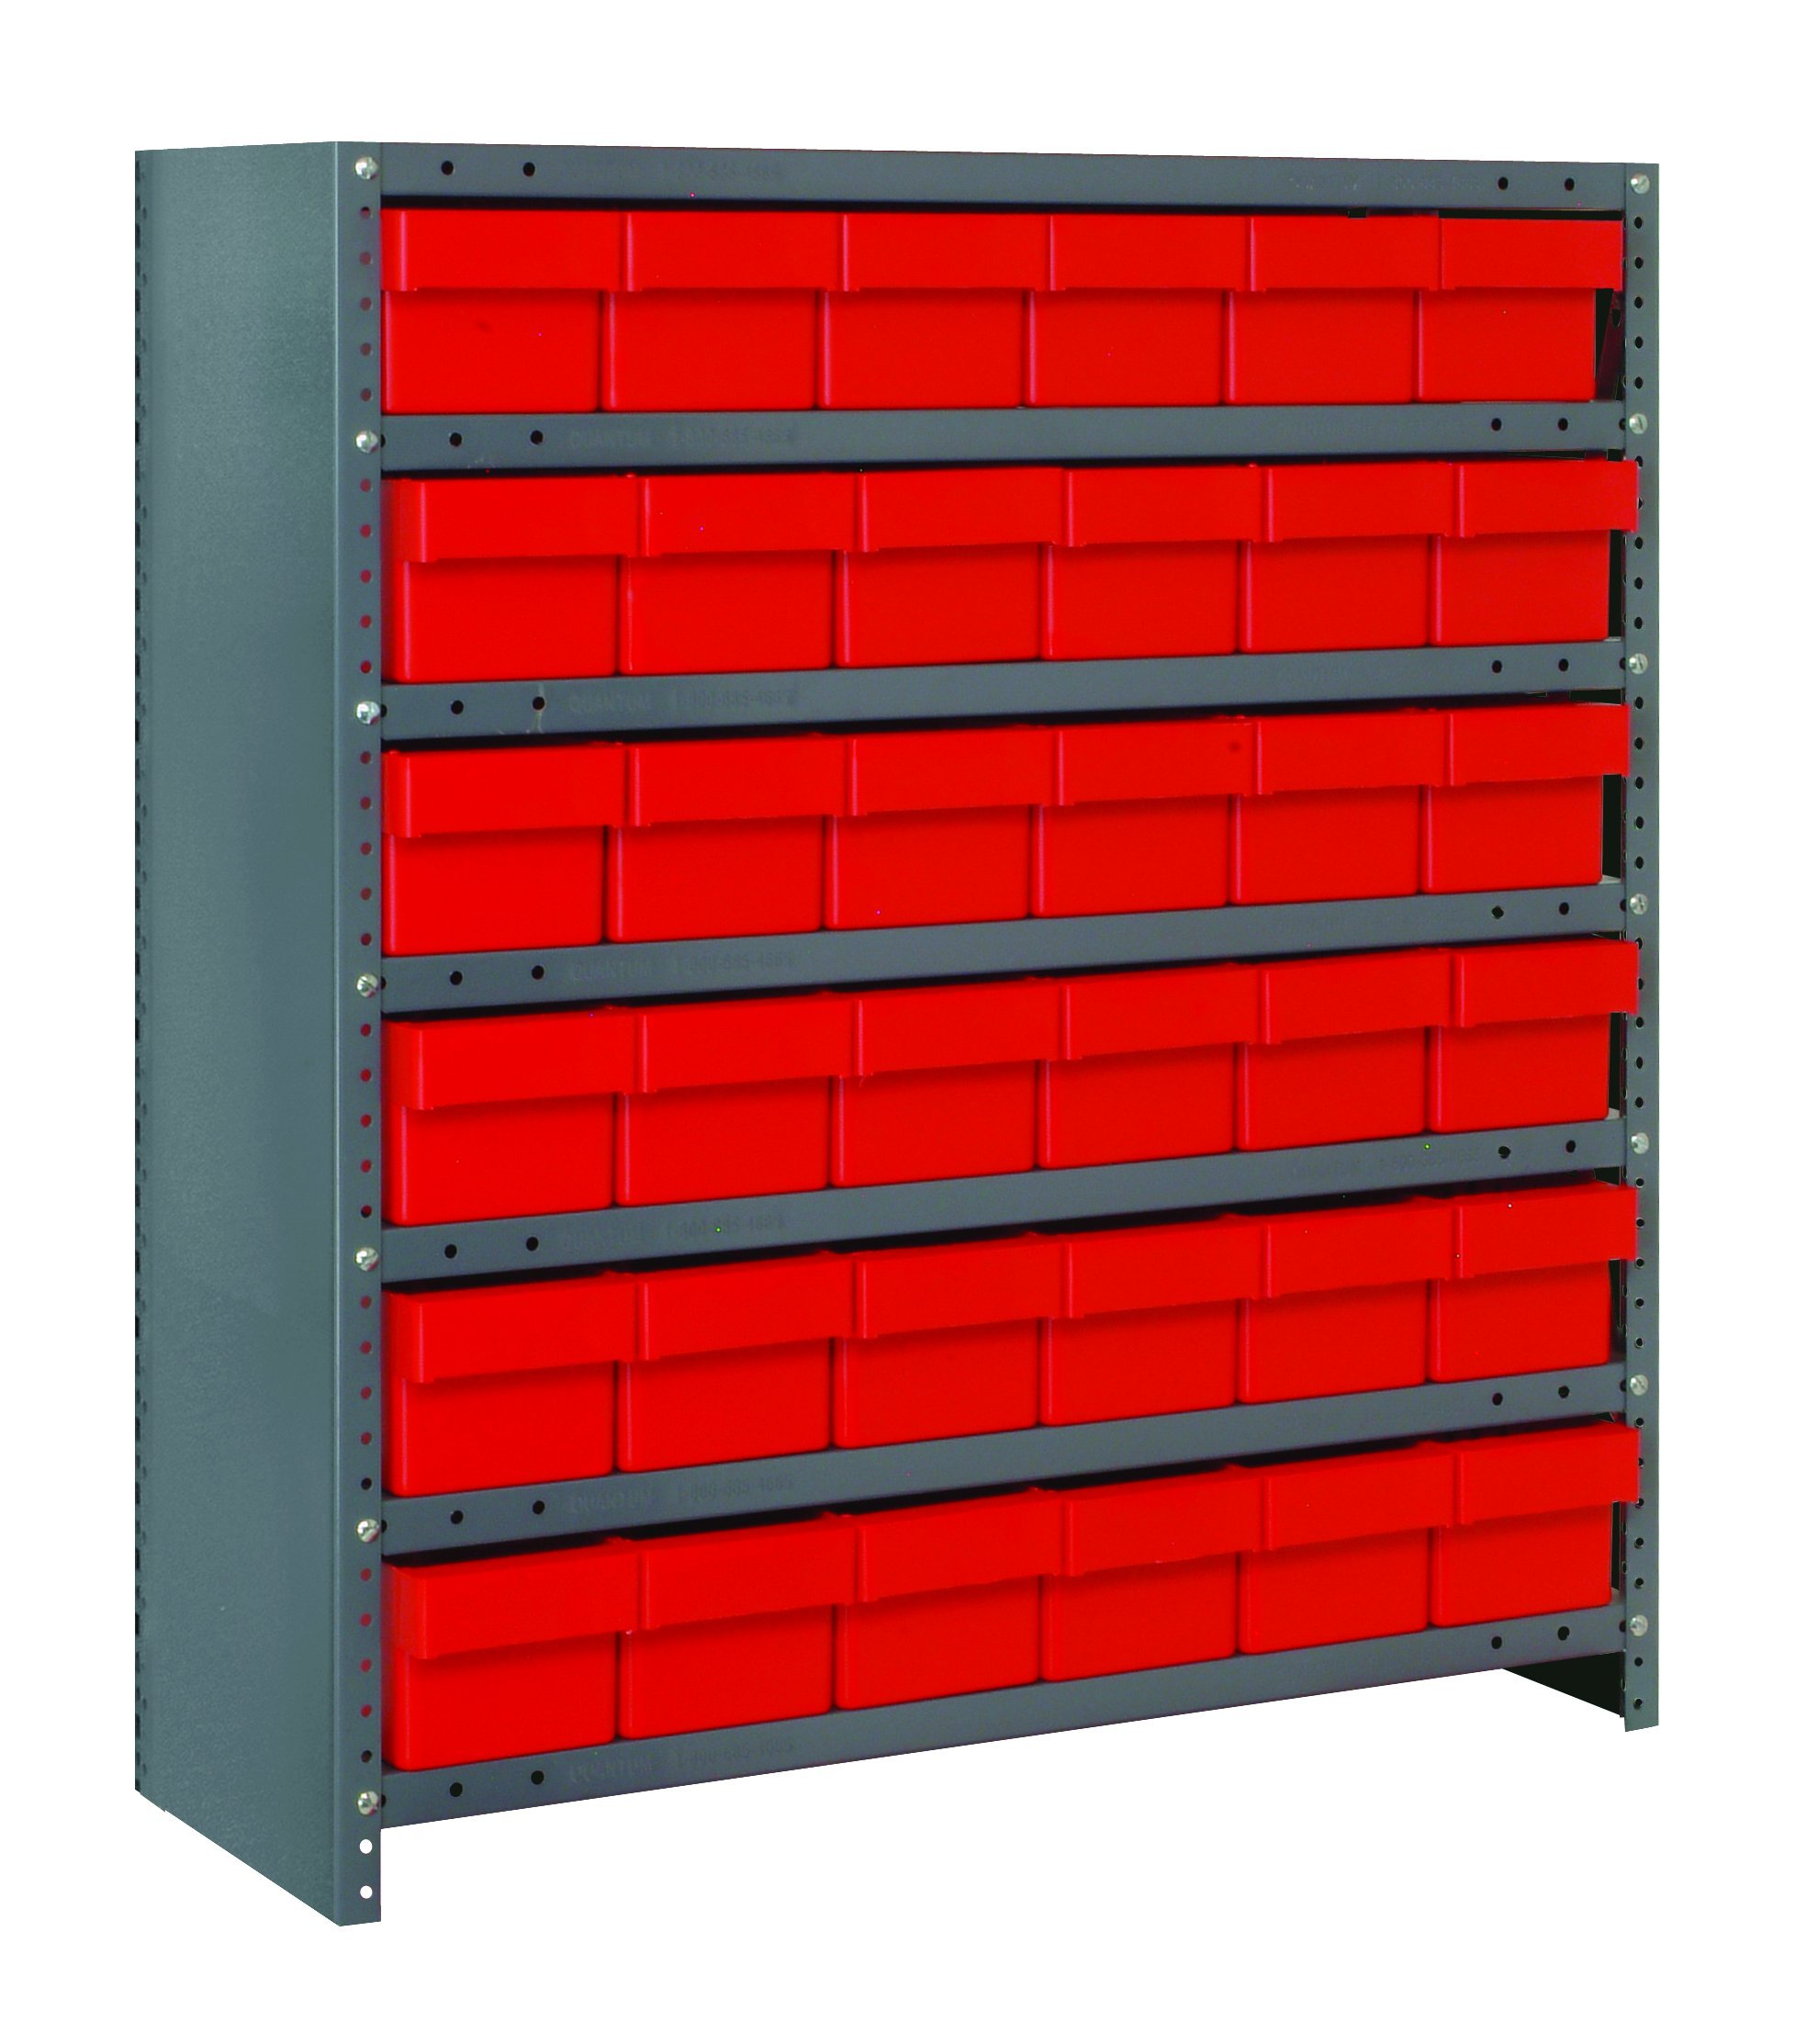 Quantum Storage Systems CL1839-602RD Closed Shelving System with Super Tuff Euro Drawers, 36 QED602 Shelf Bins, 18'' D x 36'' W x 39'' H, Red